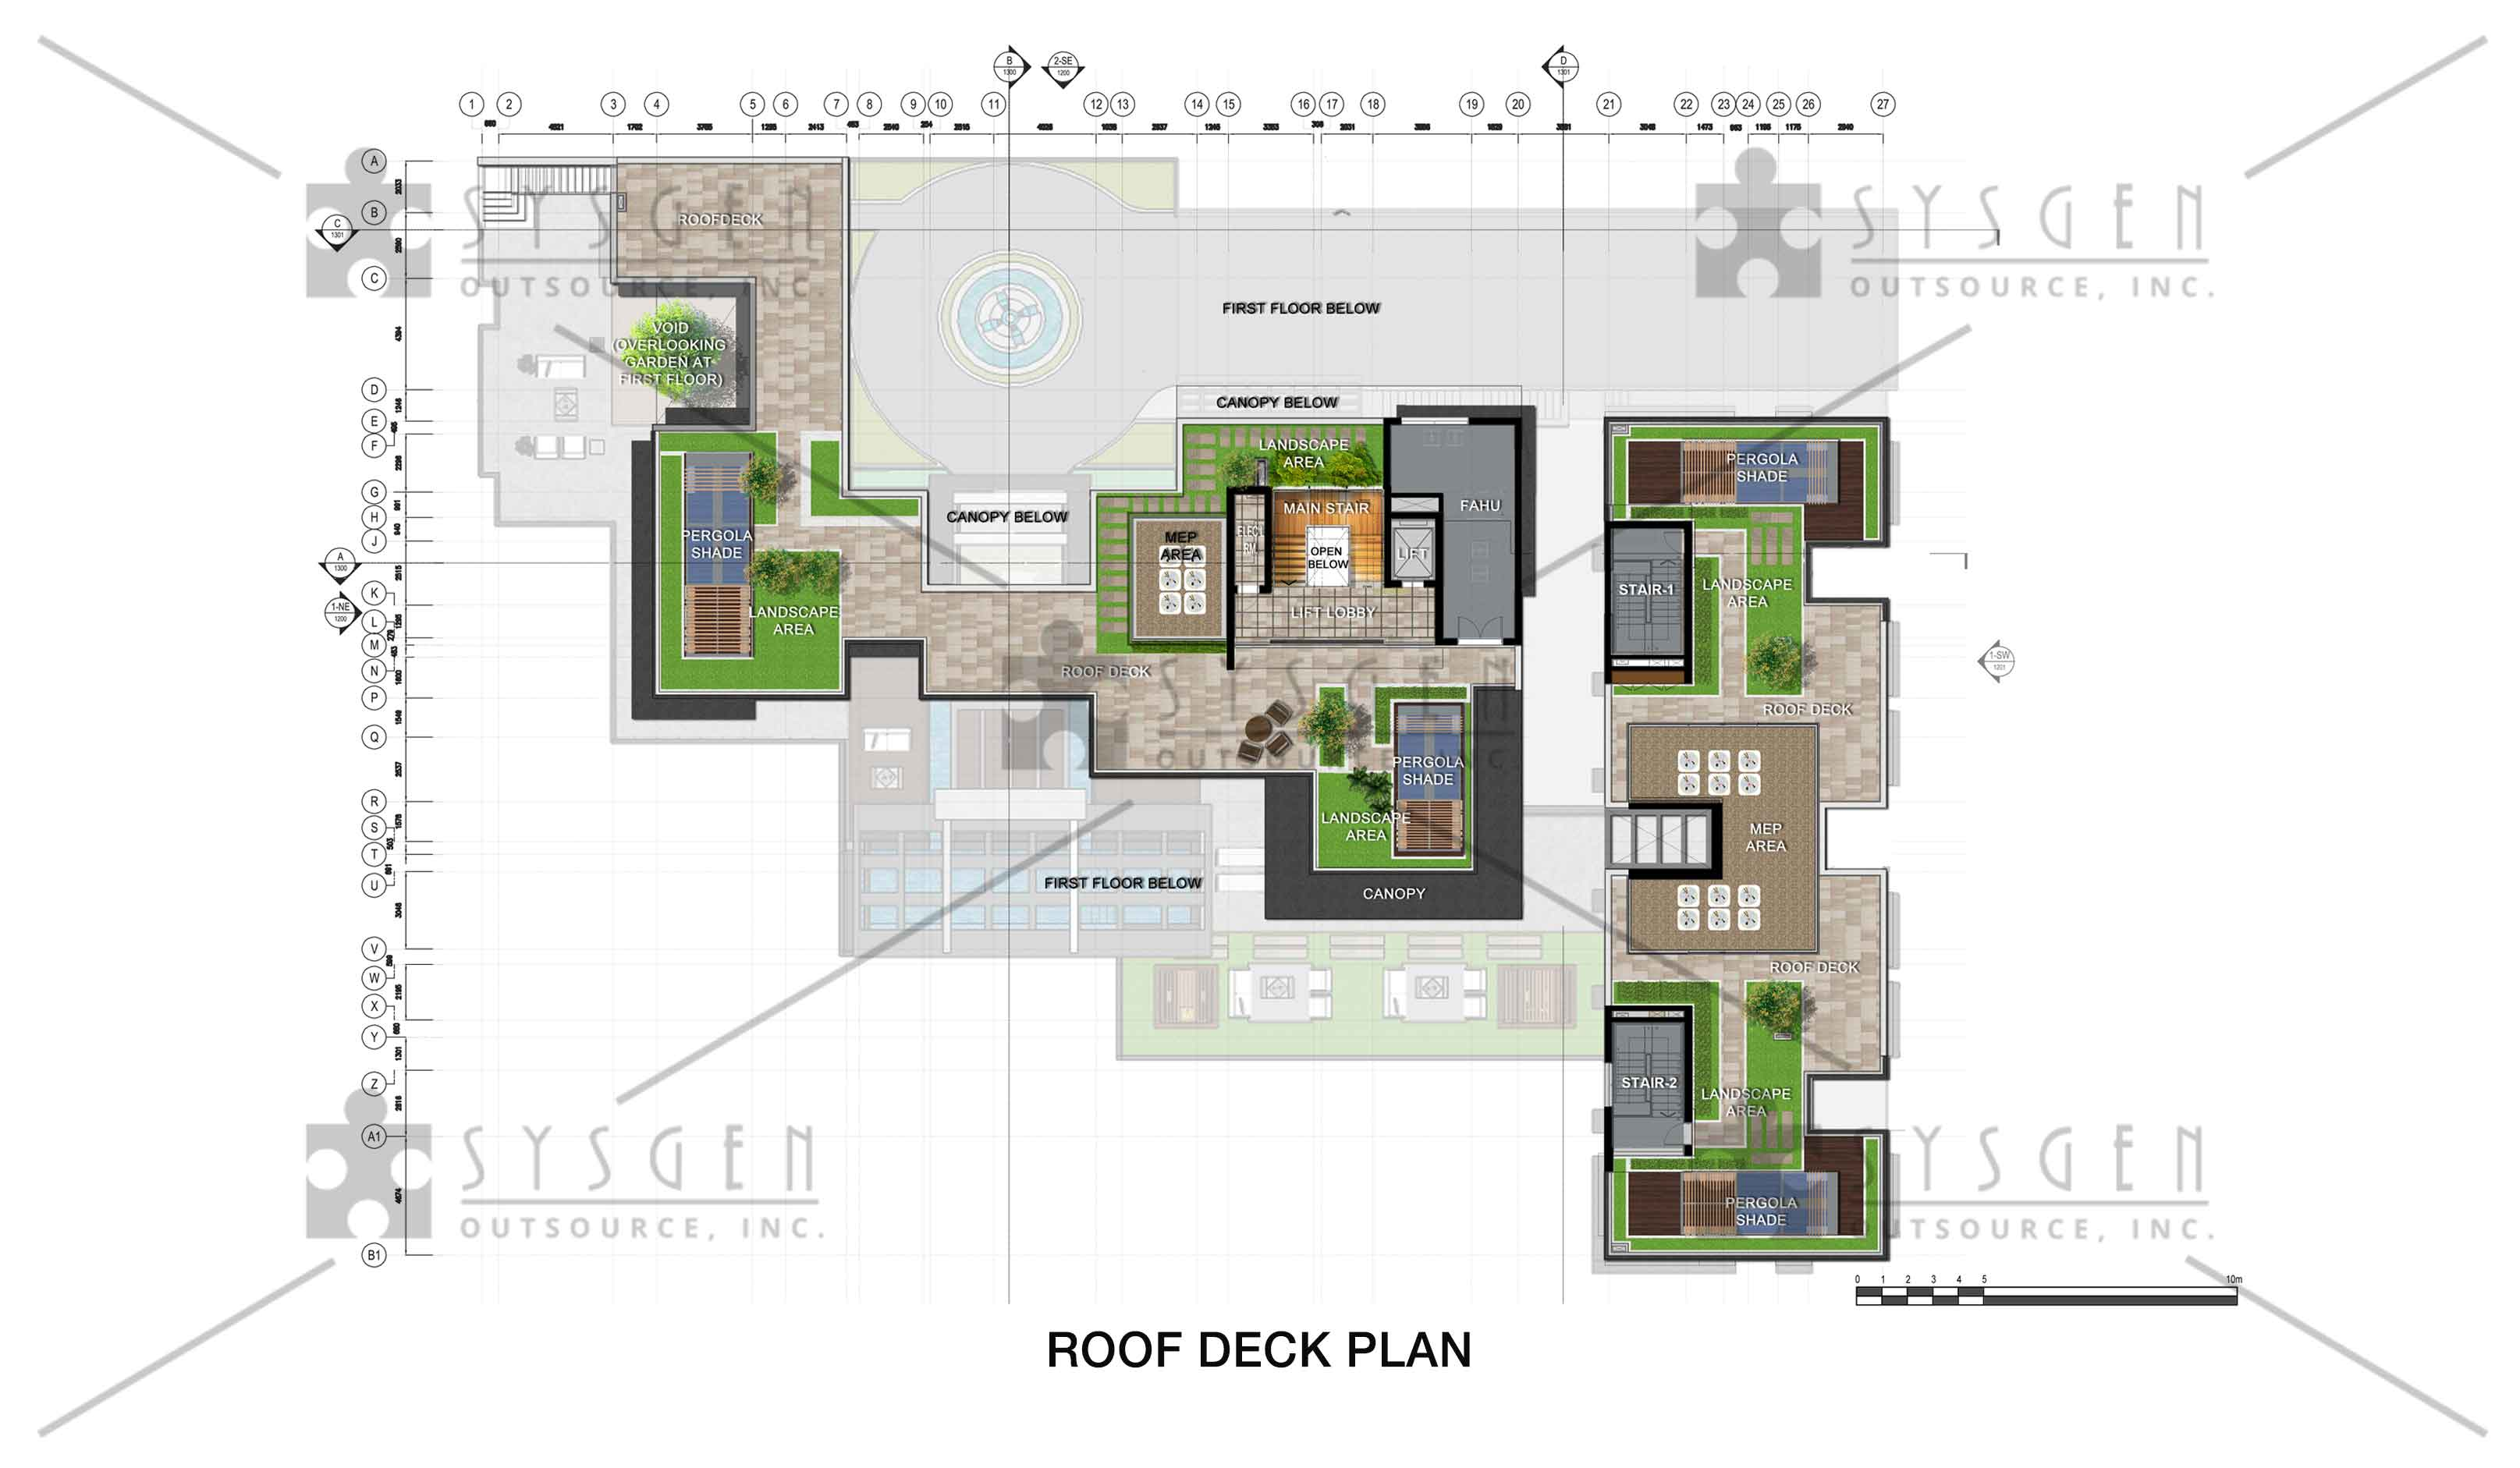 sysgen-outsource-cad-outsourcing-services-sketch-up-resi_villa-jj8